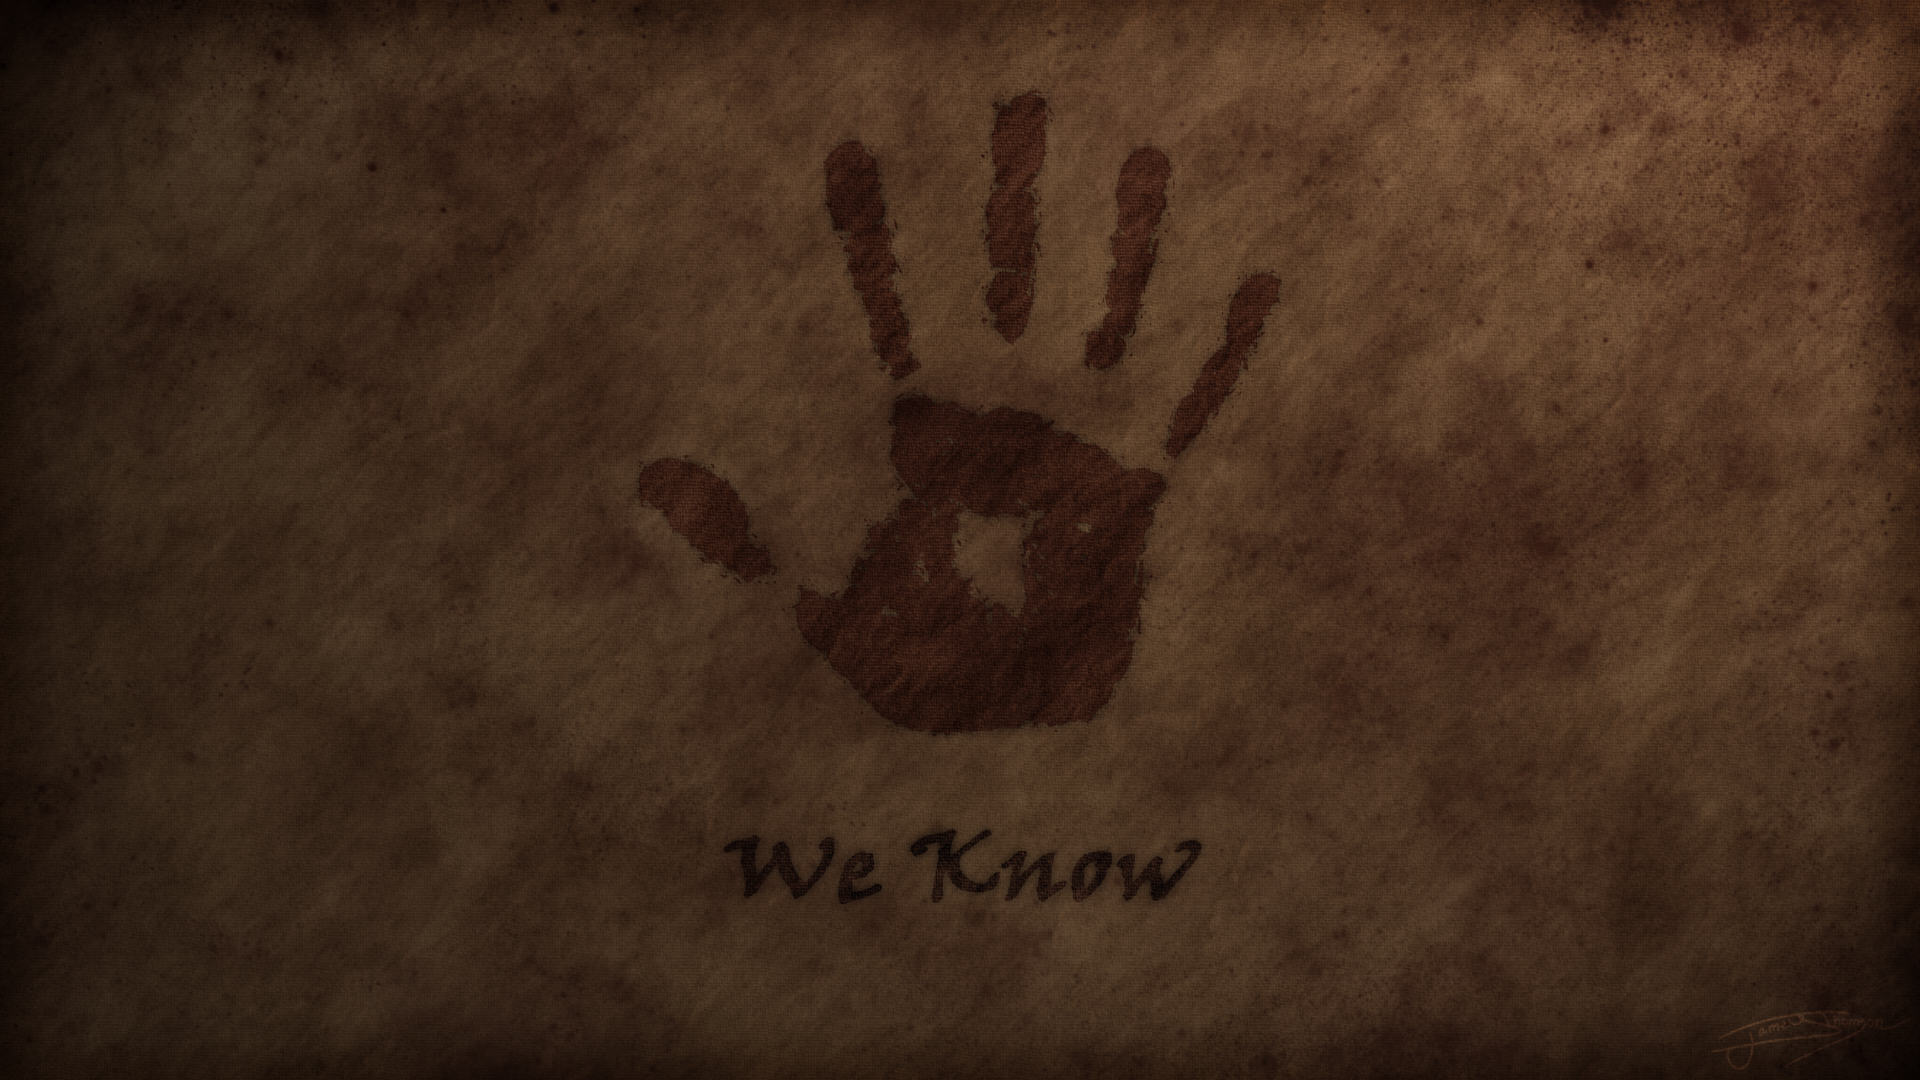 Dark Brotherhood Wallpaper by Jamey4